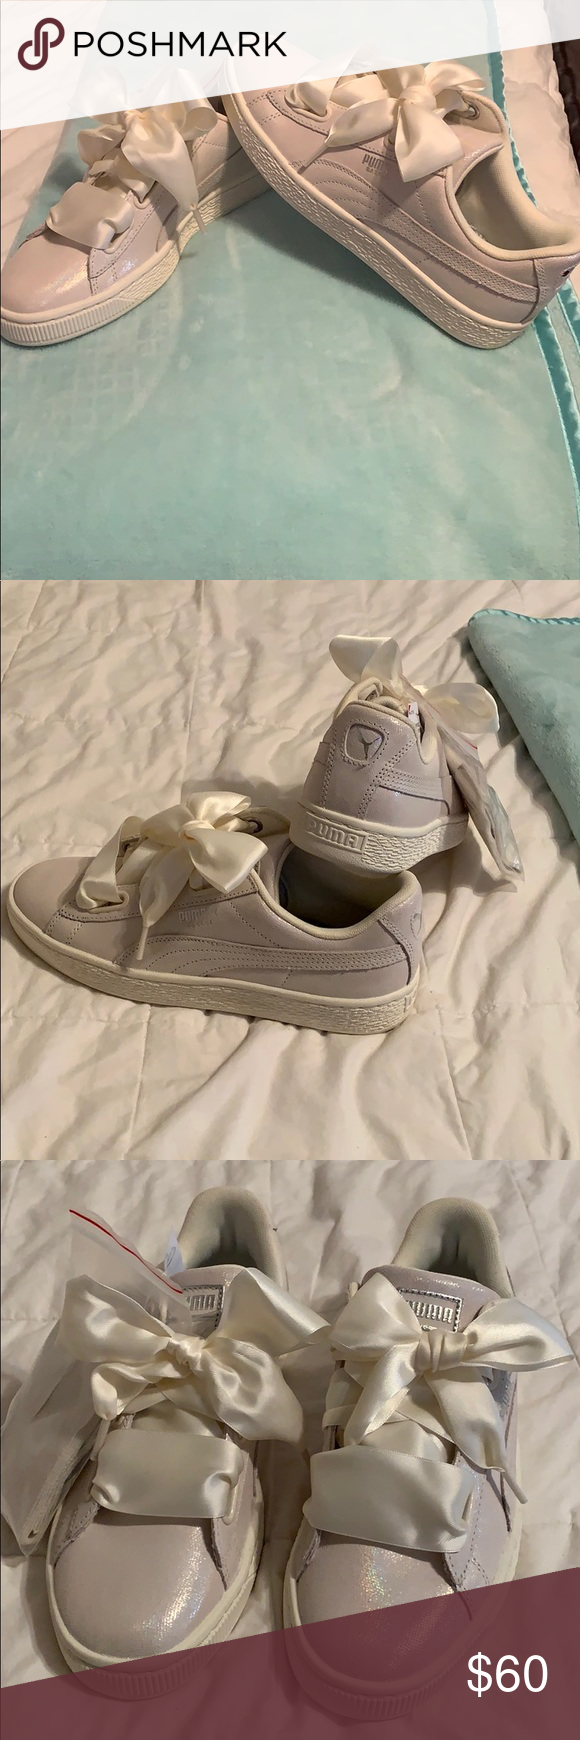 info for 4e09d 7c584 Puma Basket Hearts Sneakers Rihanna Brand New, out of box ...